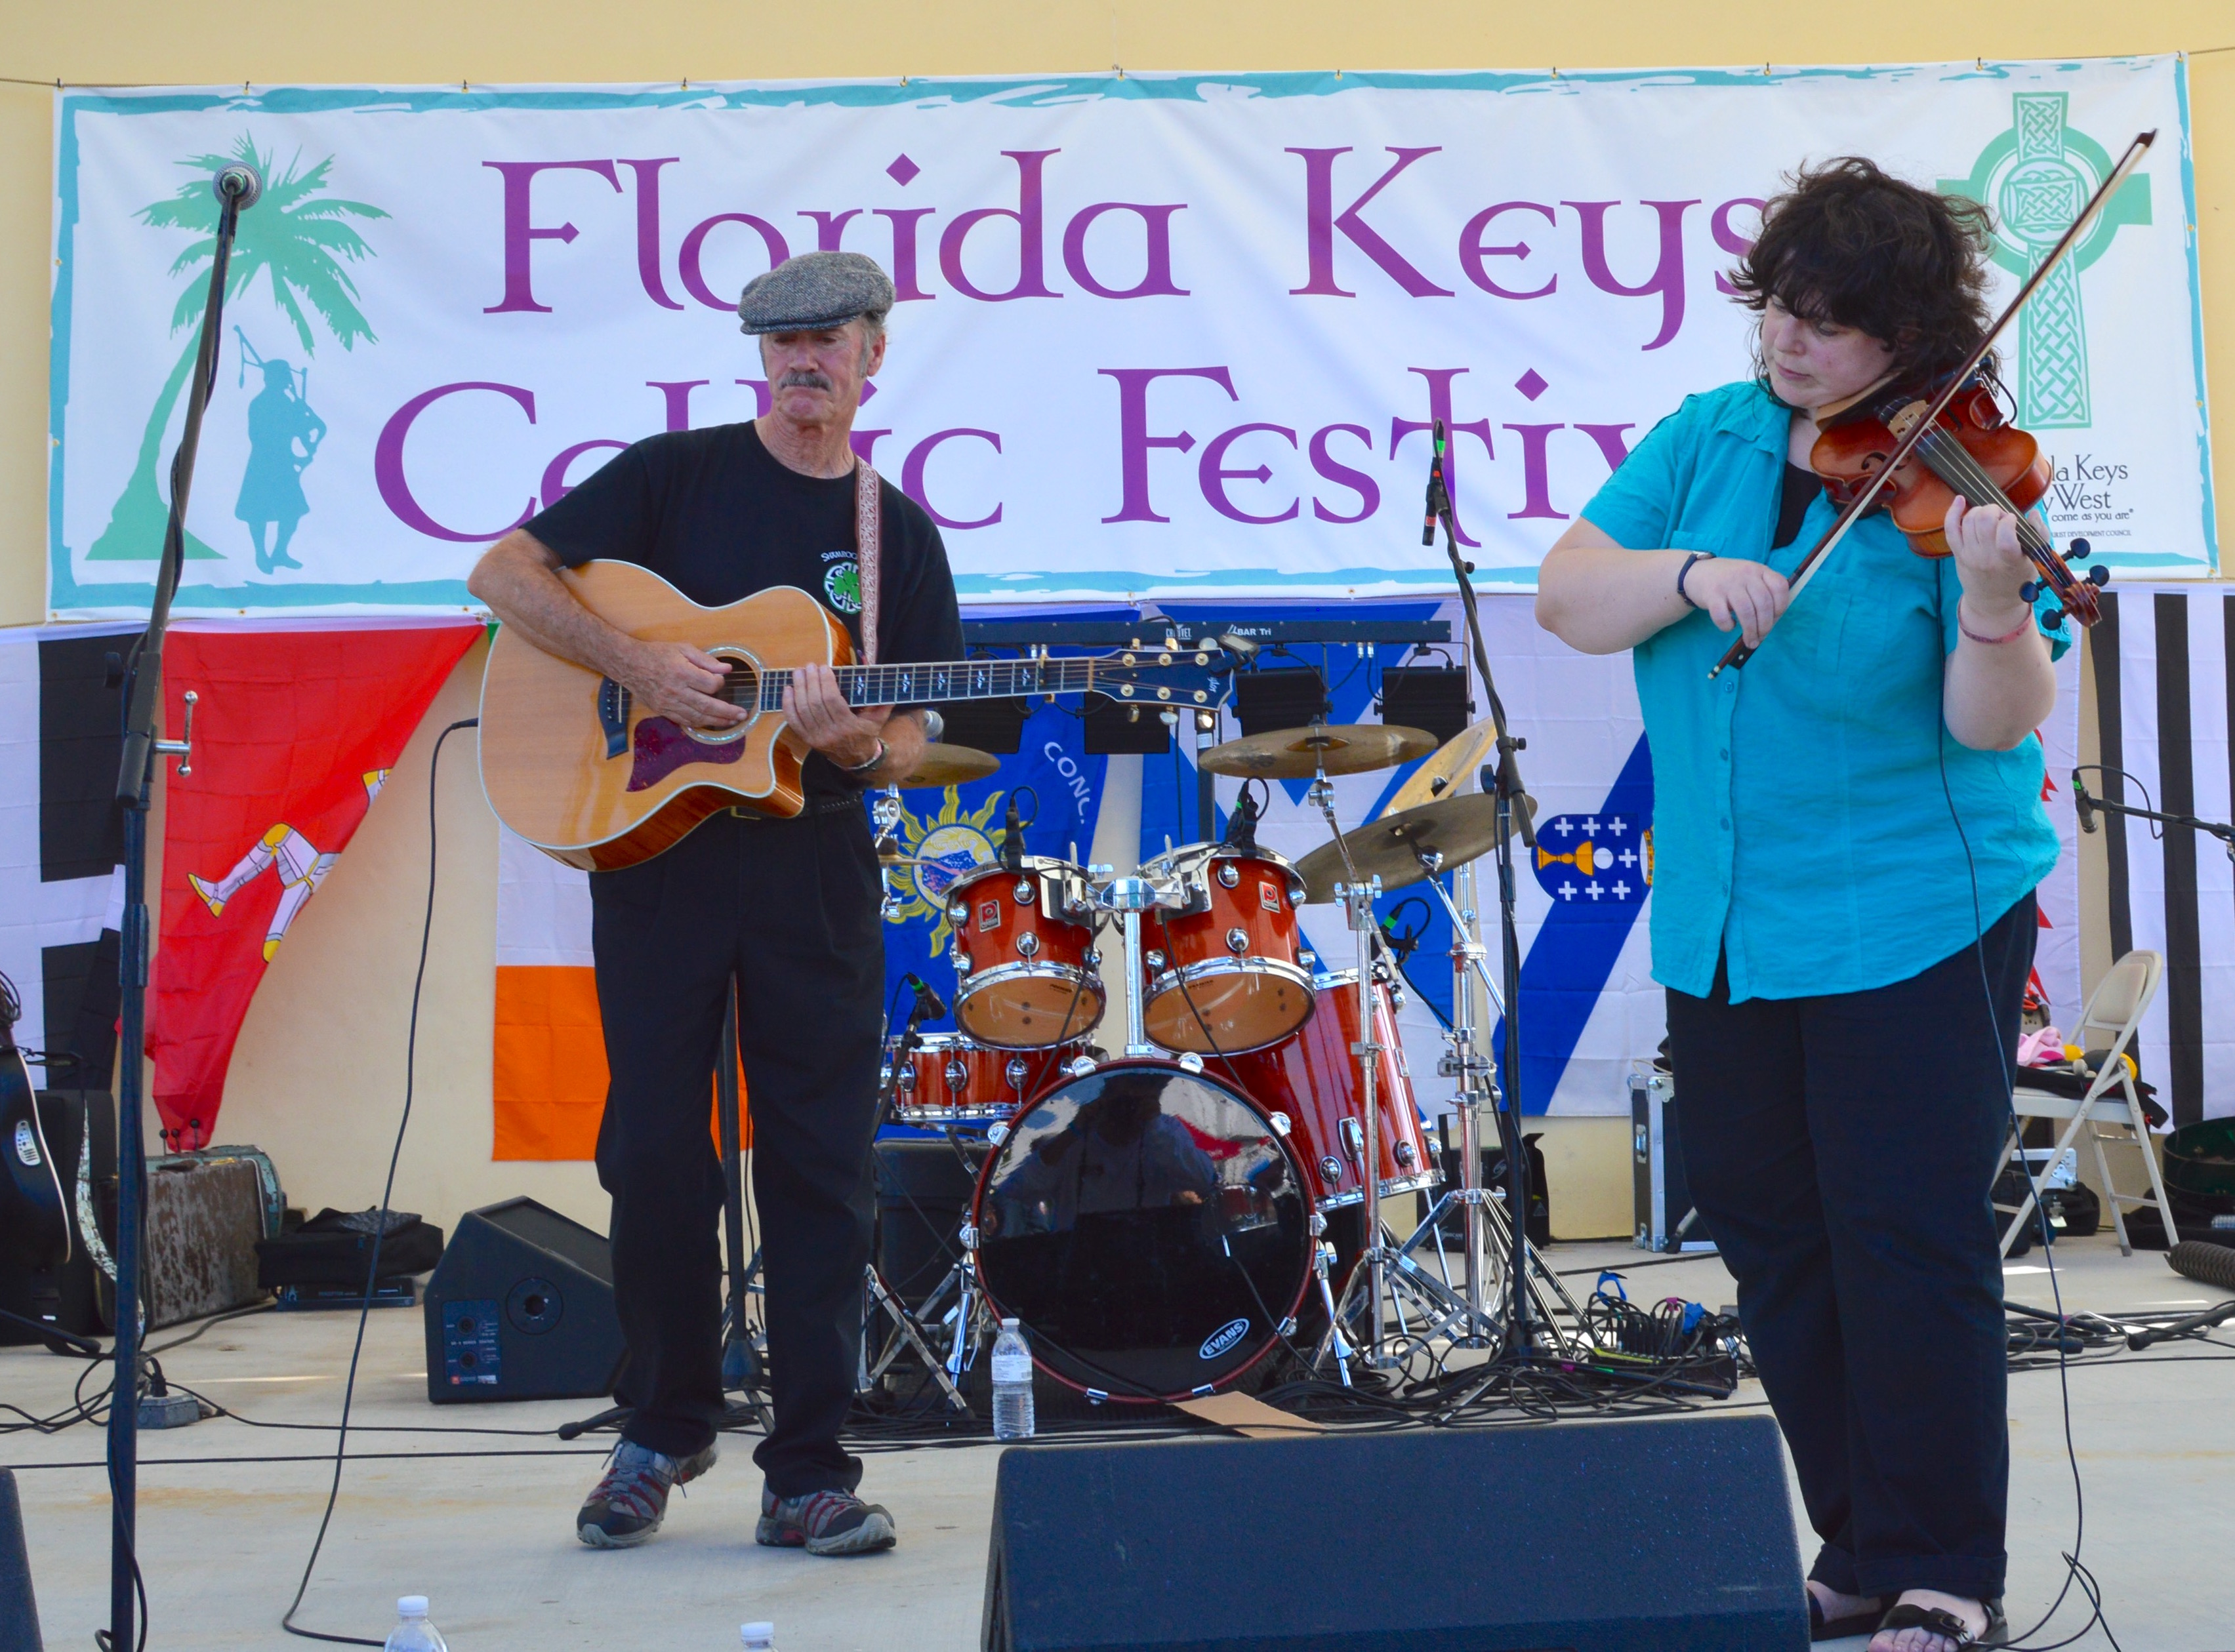 Florida Keys Celtic Festival to Feature Live Music, Culture and Fun Jan. 10-12